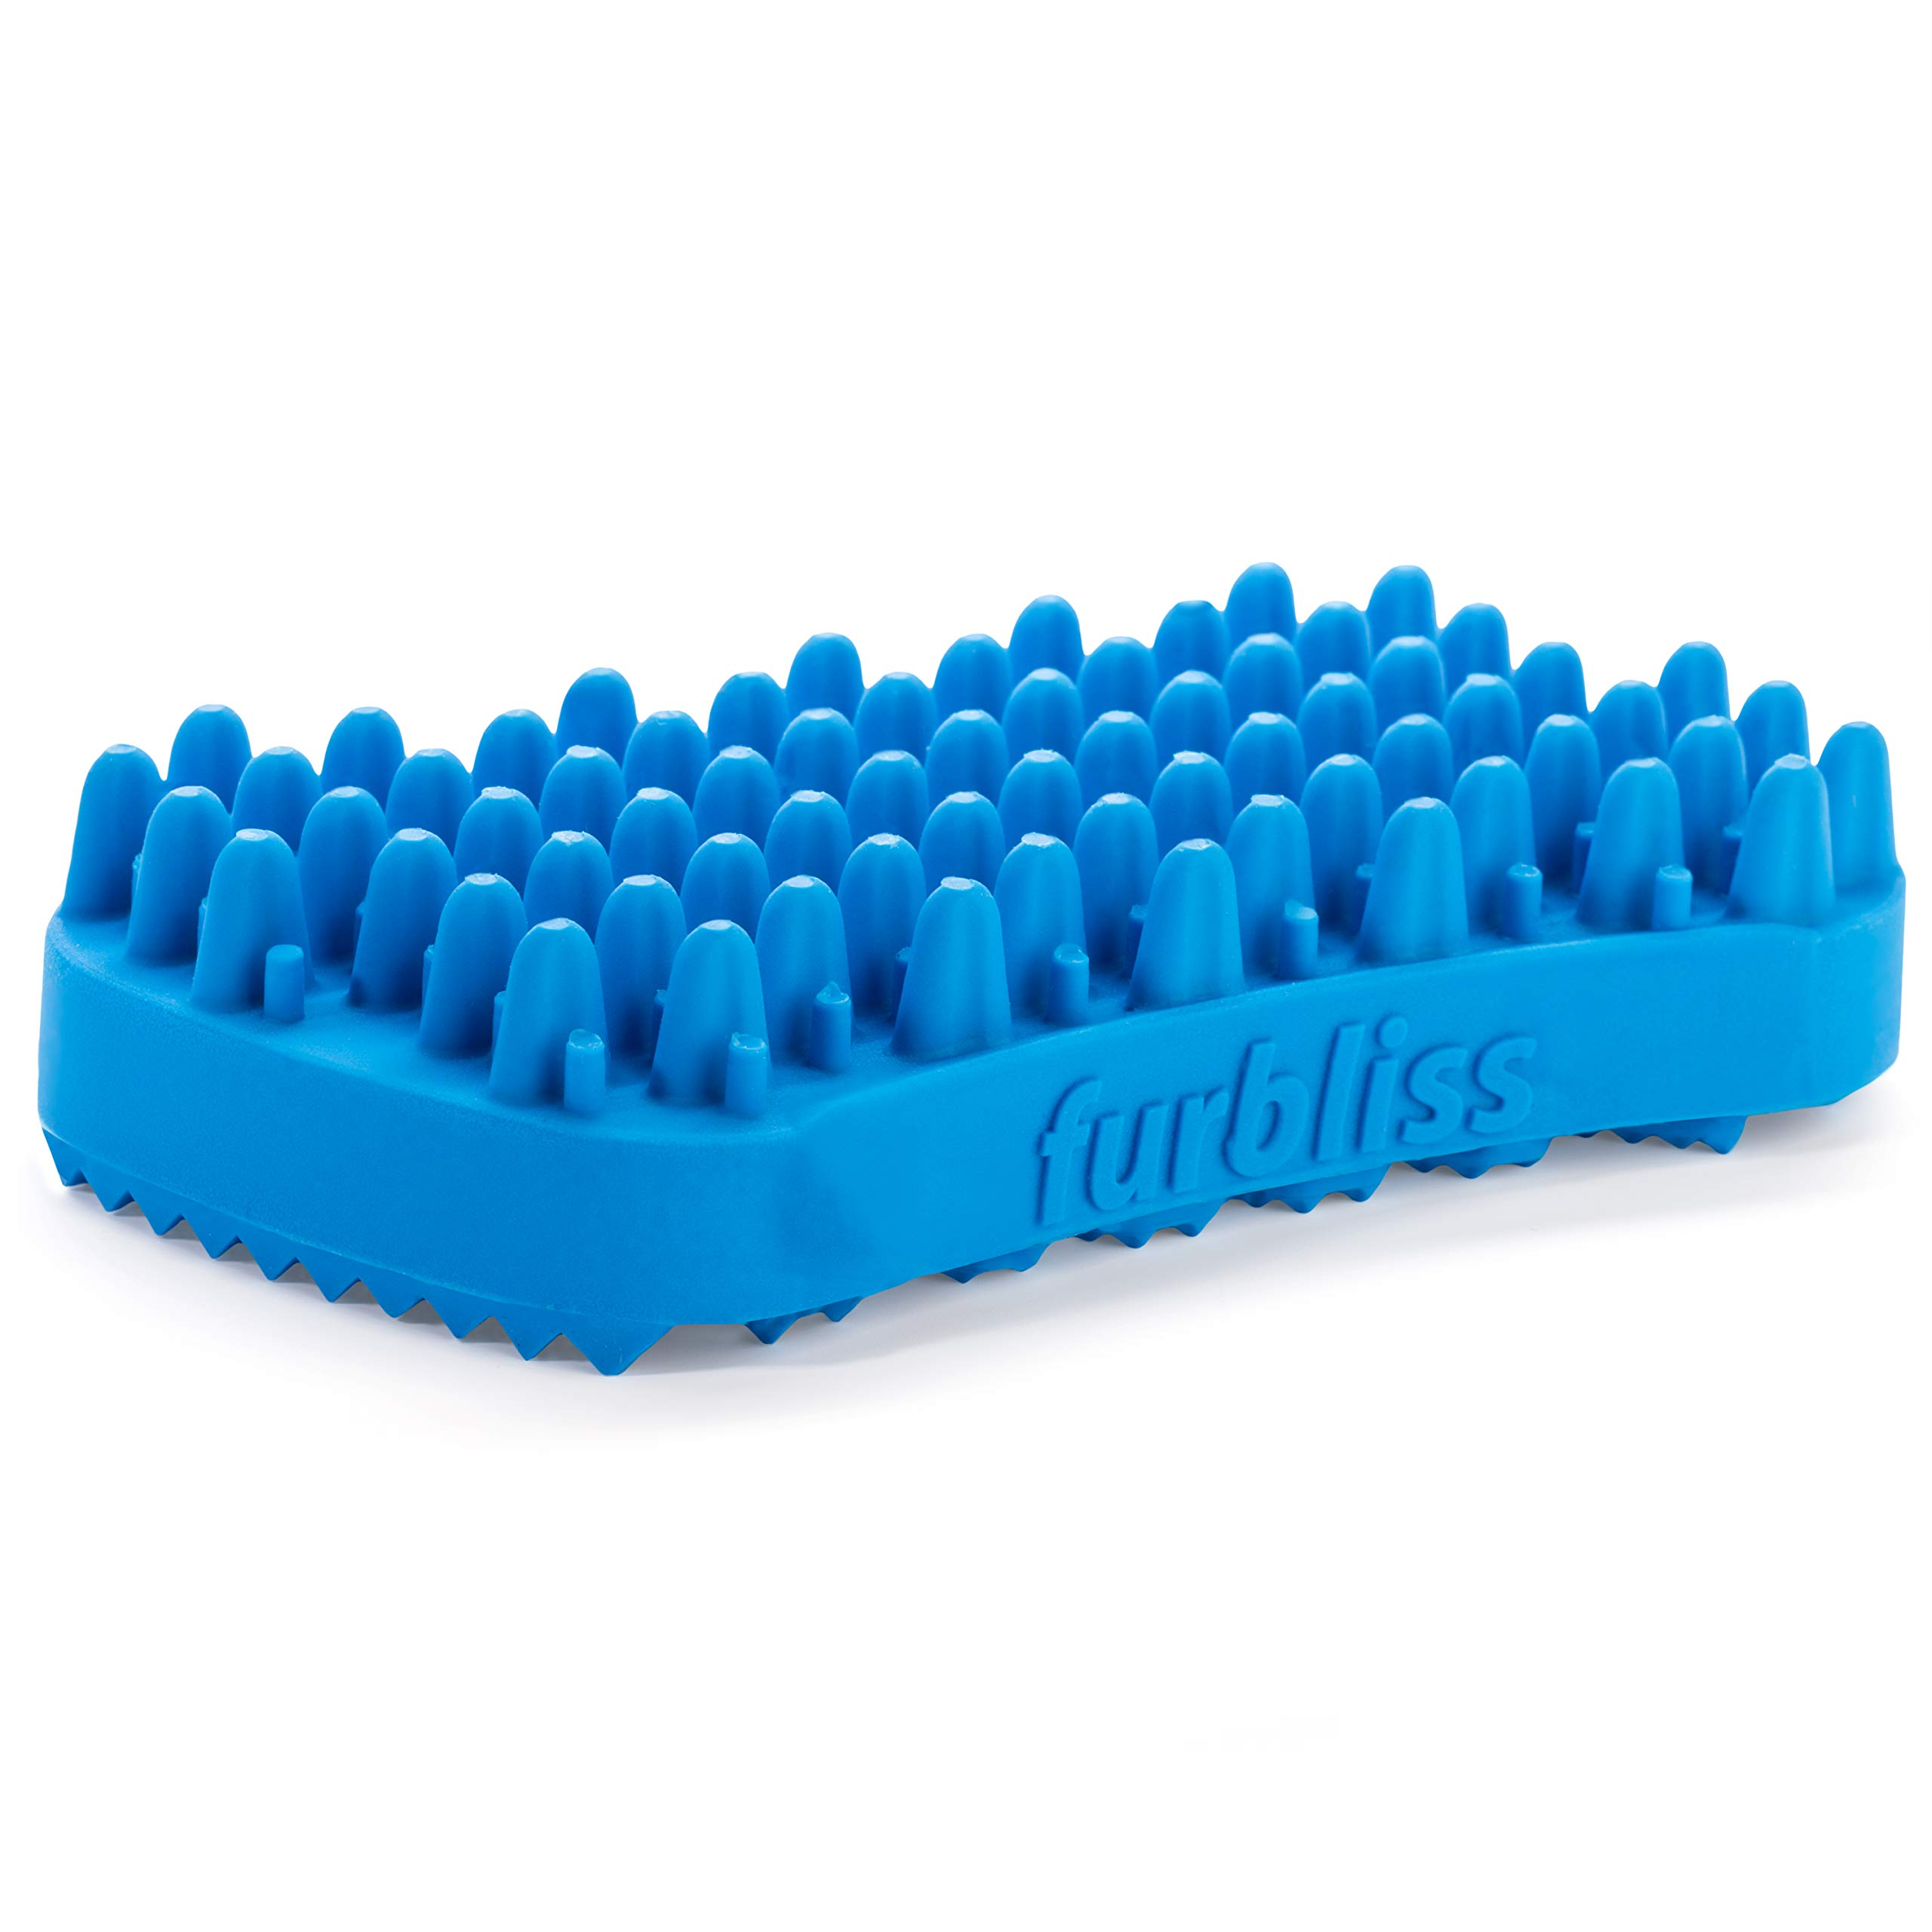 Furbliss Dog & Cat Brush for Small Pets with Short Hair Non Metal Grooming Bathing Massaging and Deshedding Silicone Brush - Blue